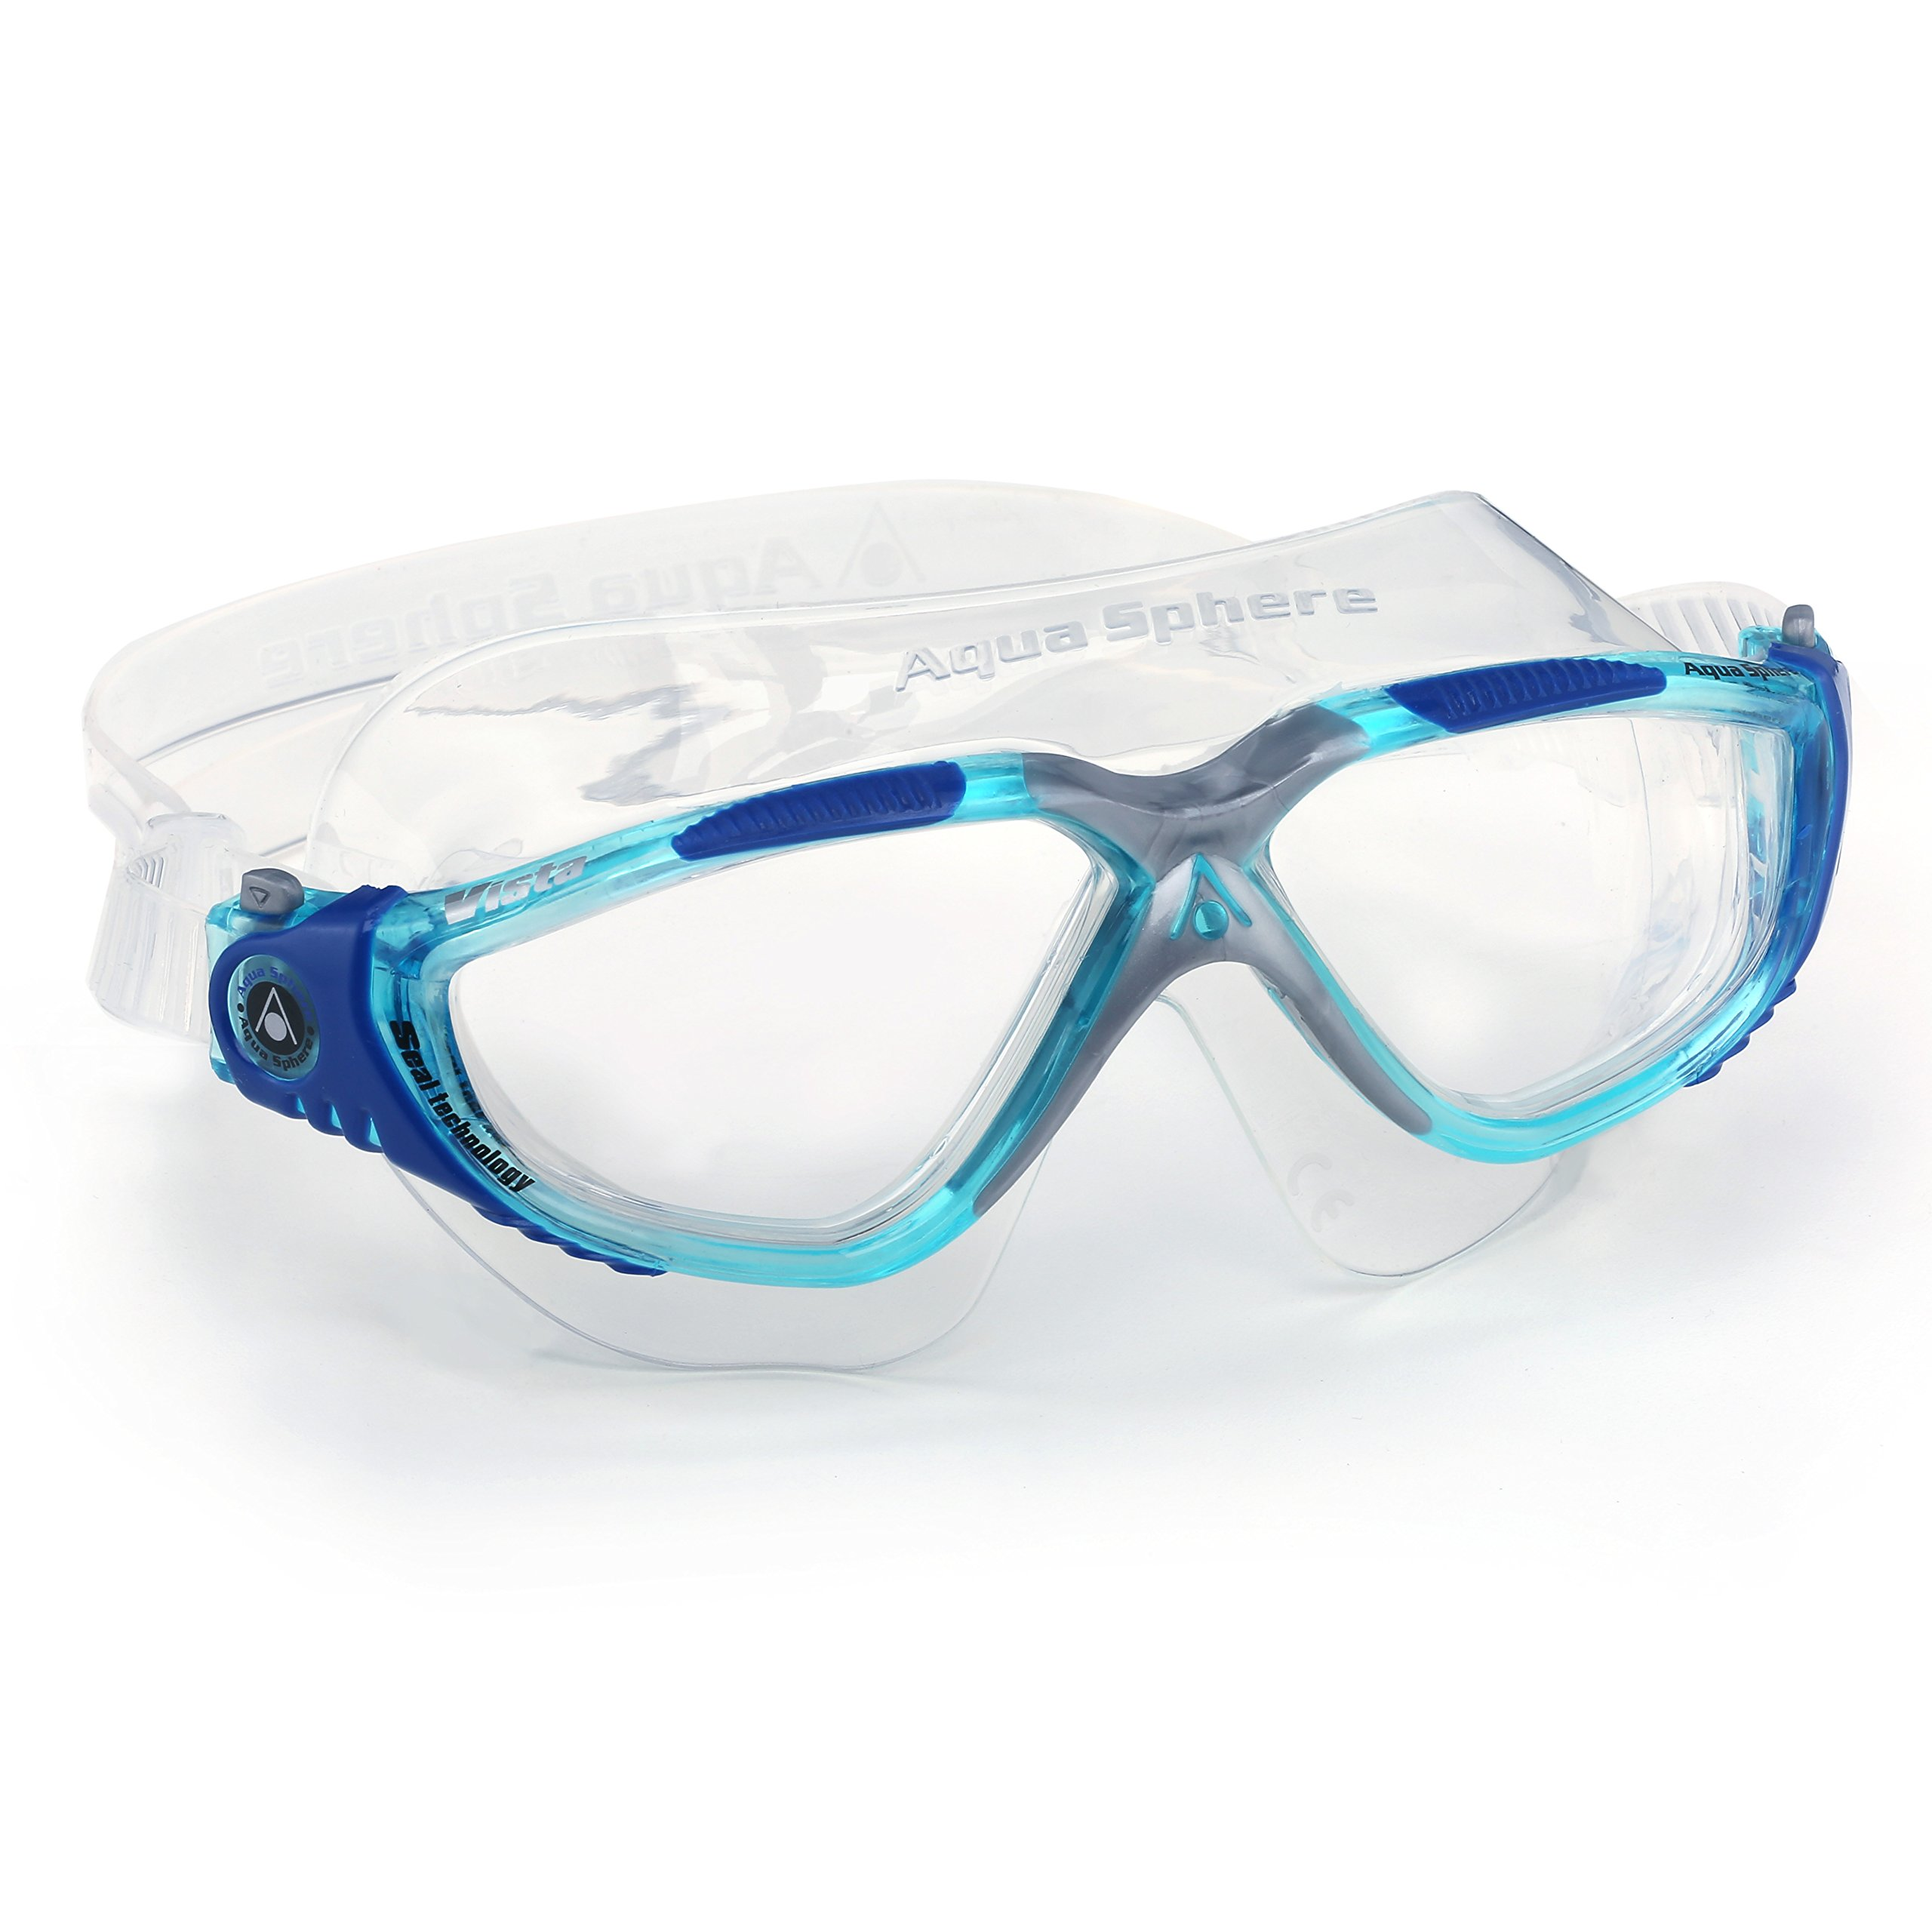 Aqua Sphere Vista Swim Mask Goggles, Clear, Aqua/Blue/Grey by Aqua Sphere